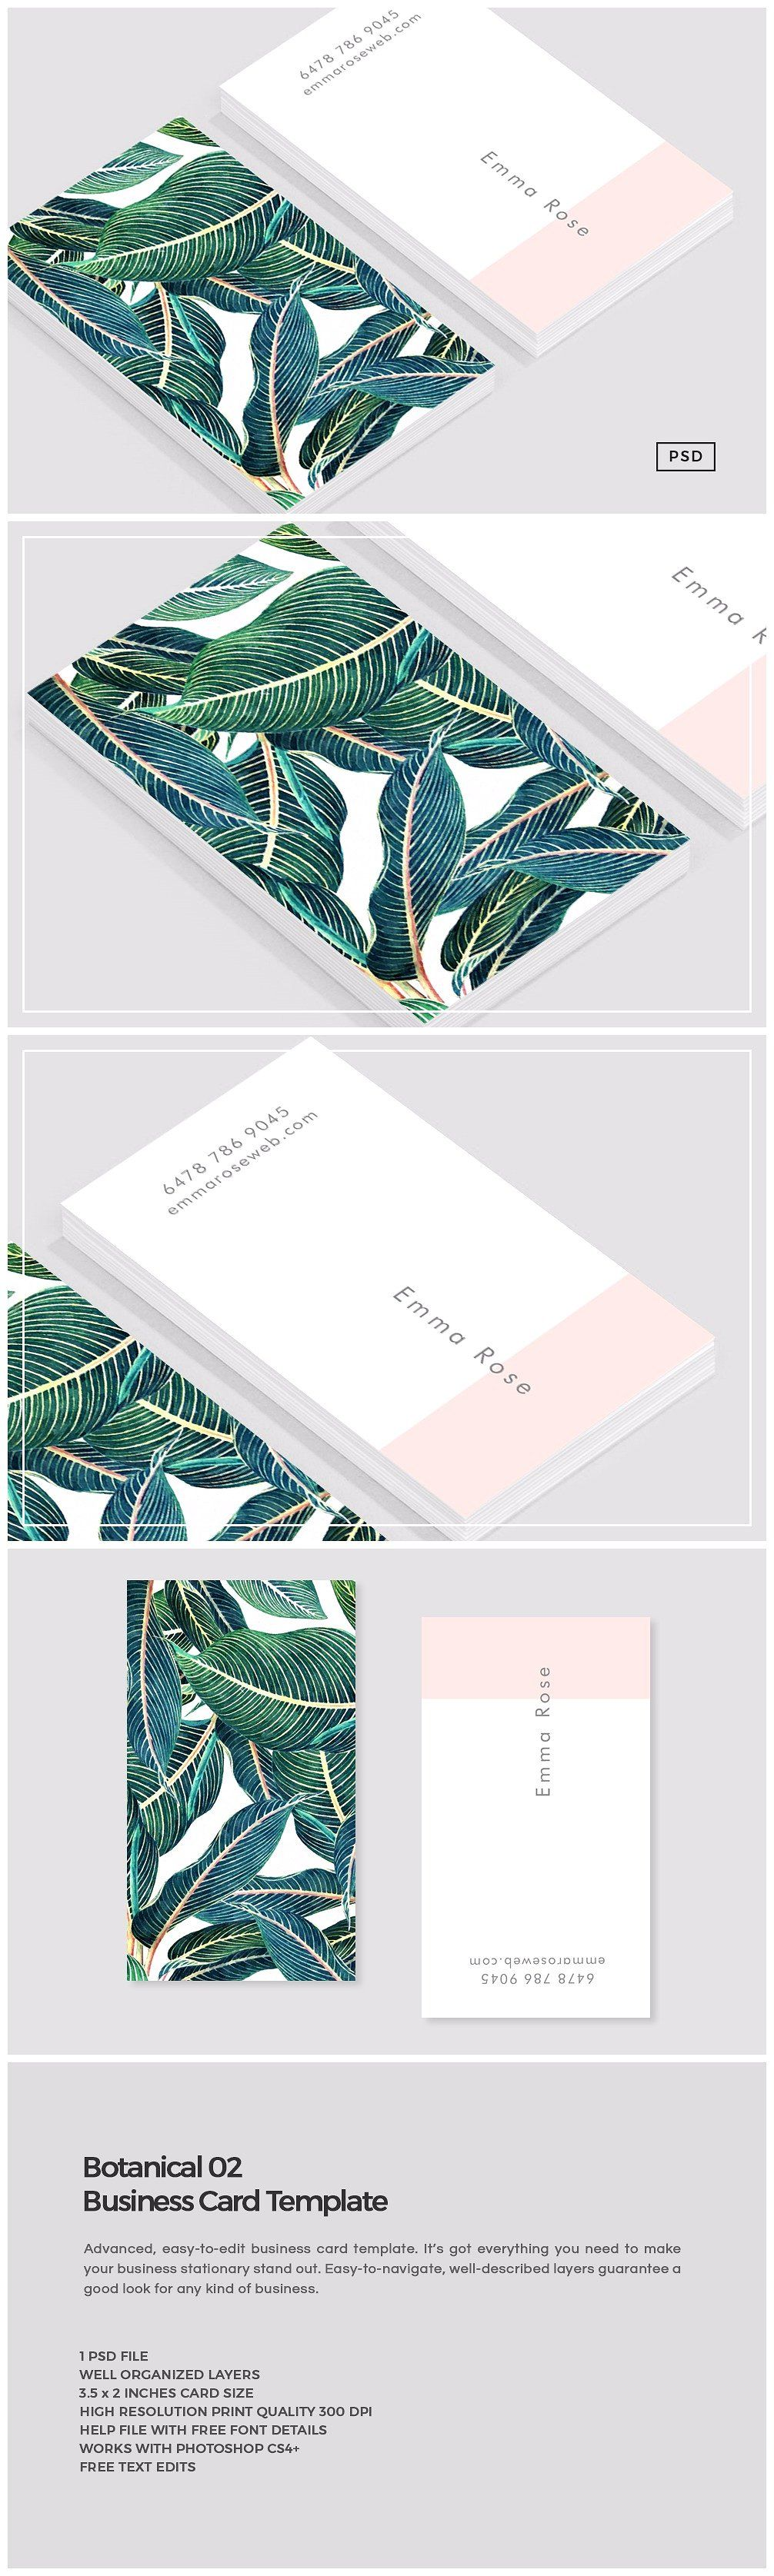 Botanical 02 Business Card Template By The Design Label On